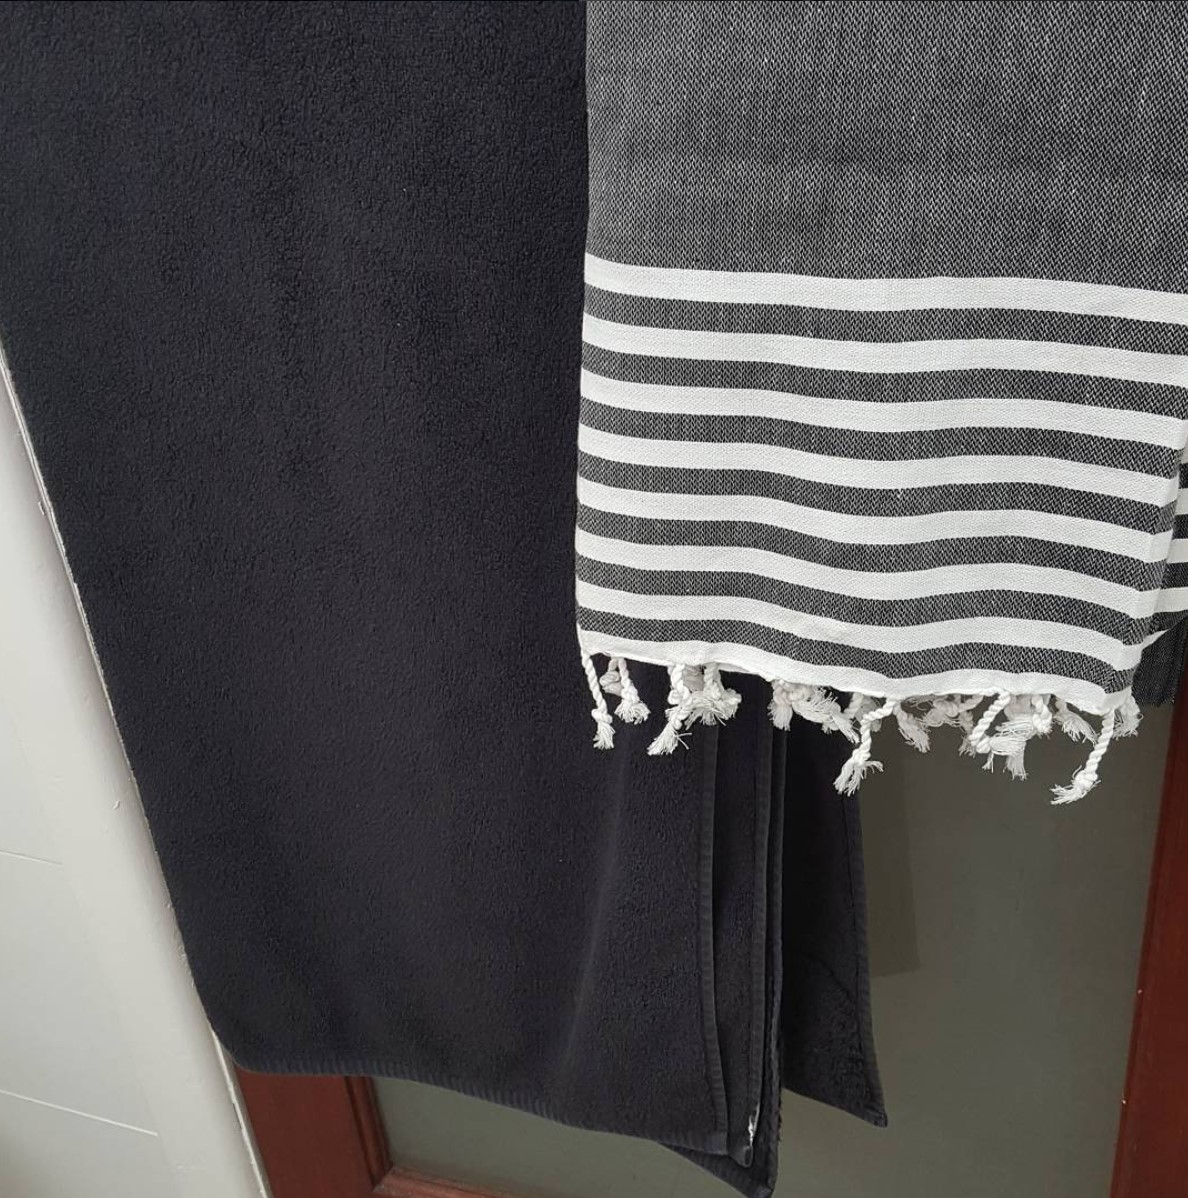 How to Enhance the Style of Your Bathroom with Turkish Towels